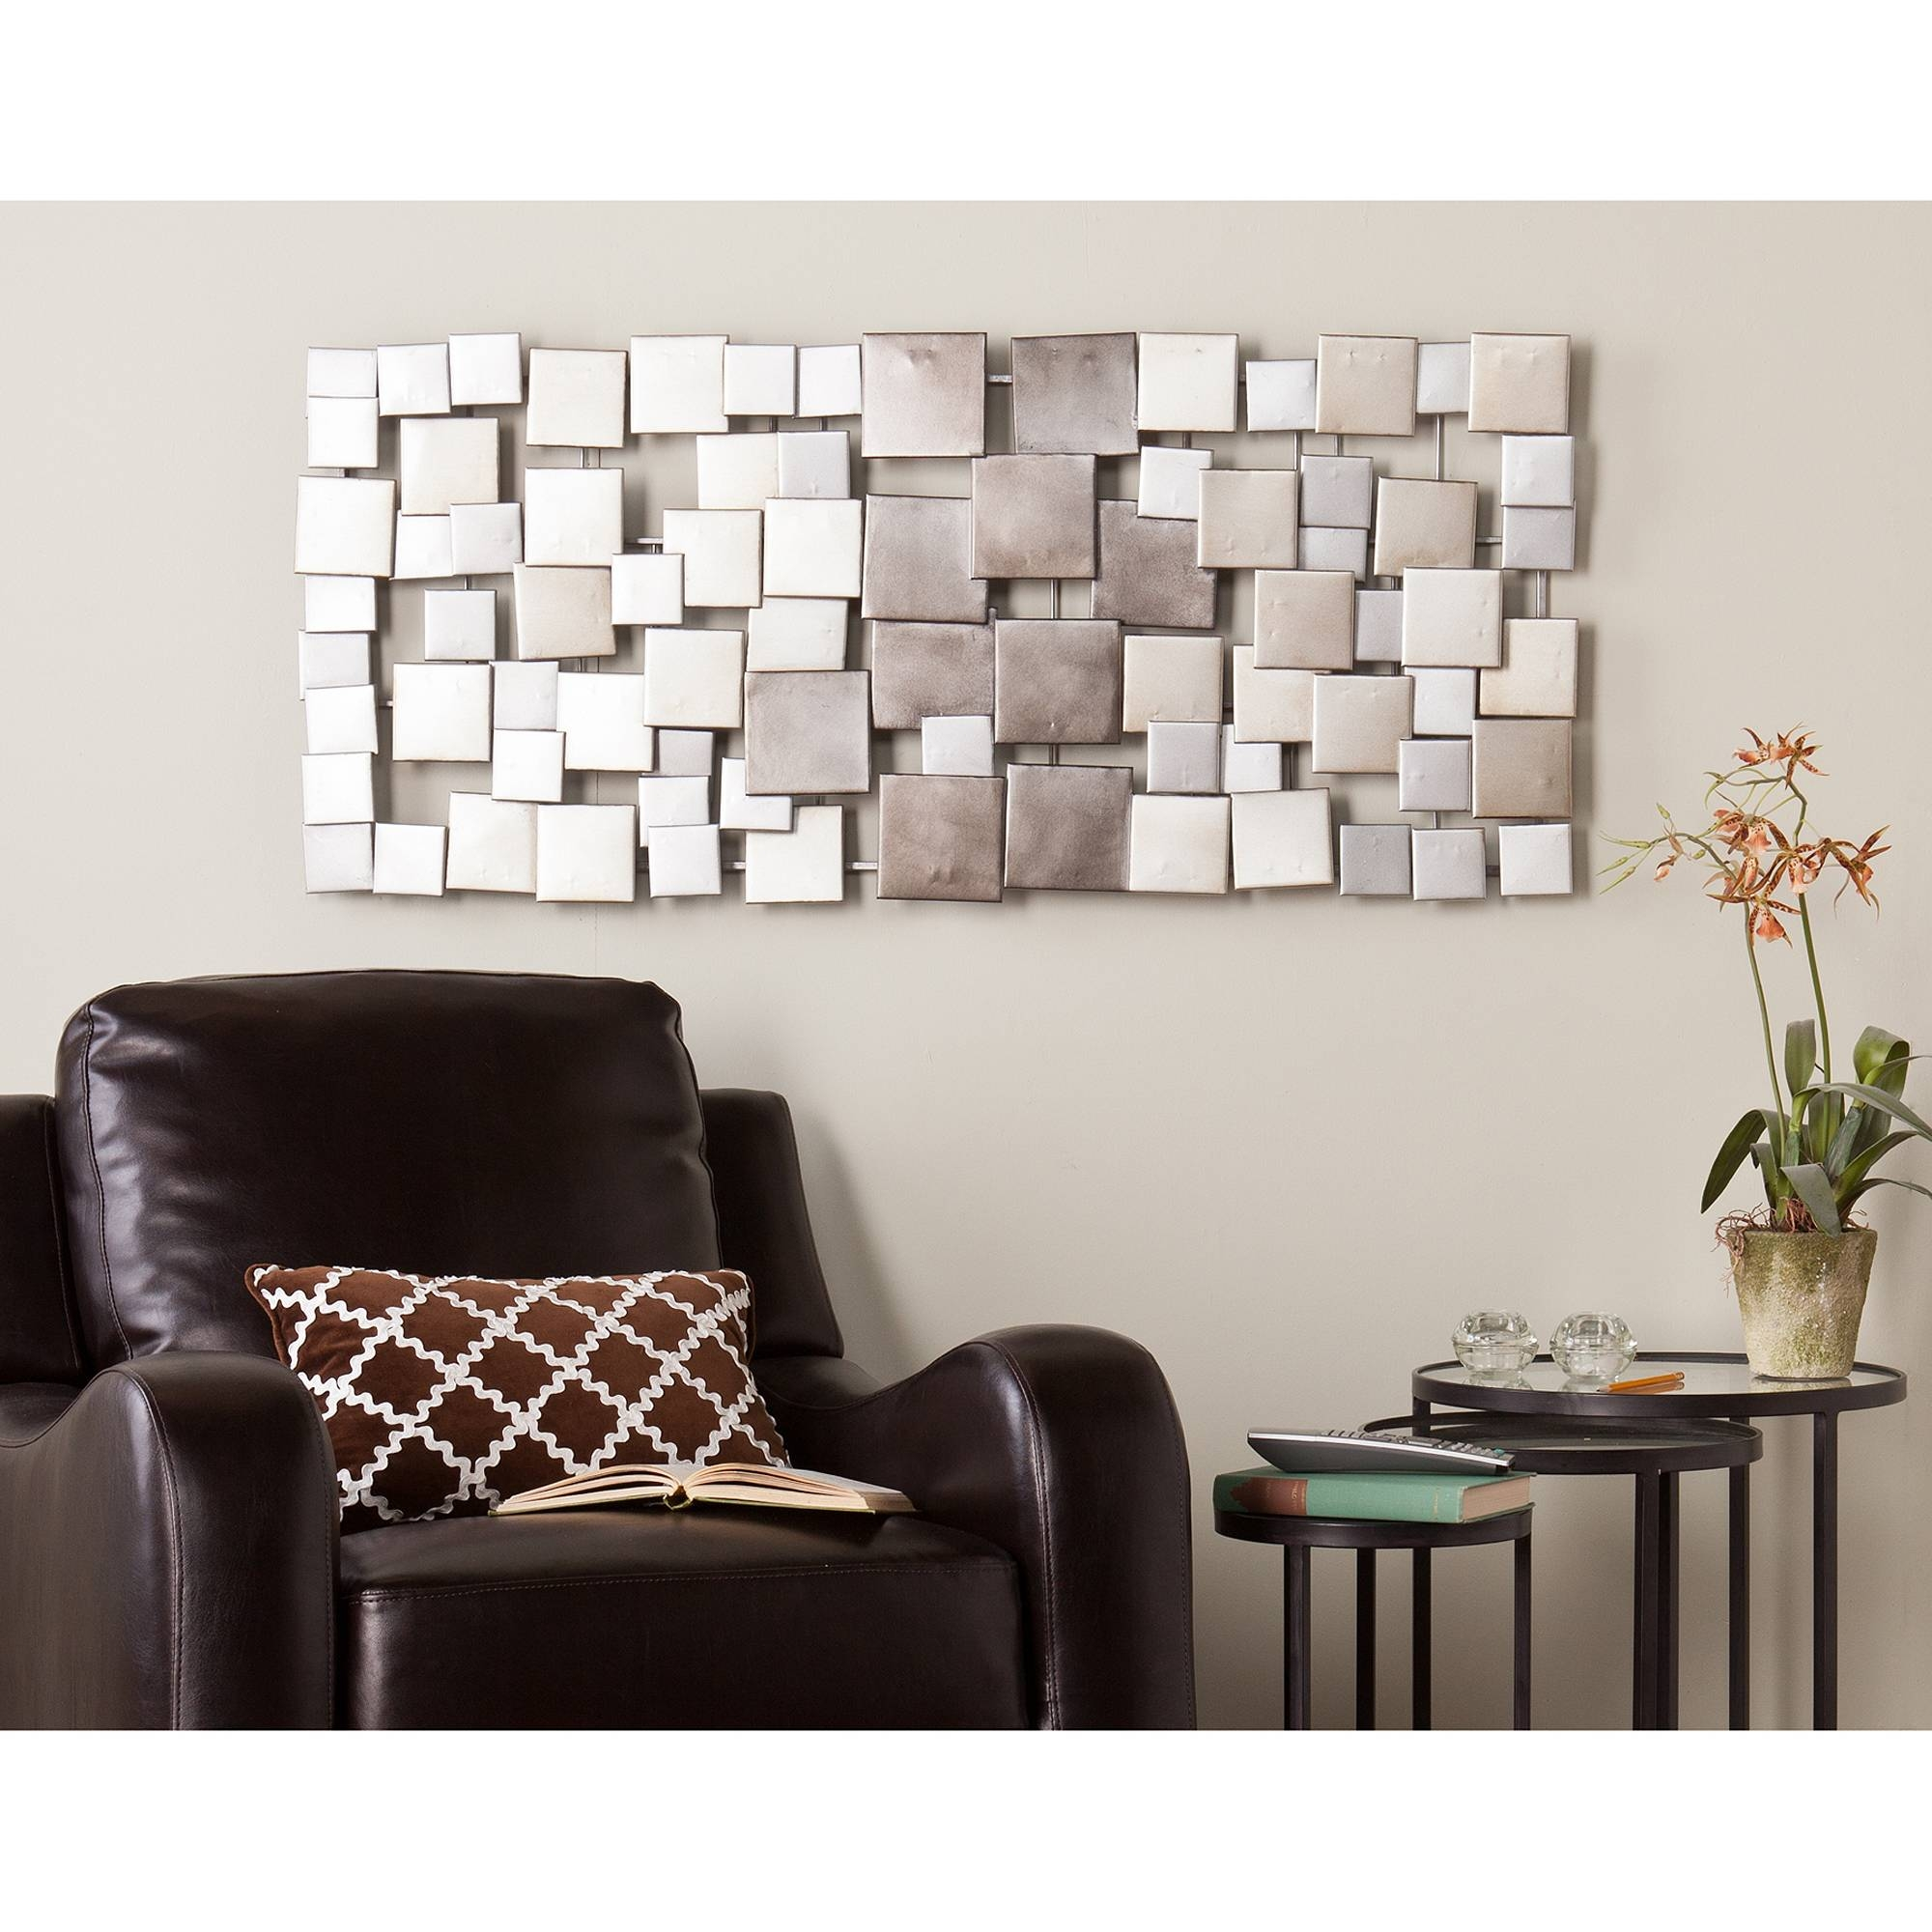 Metal Wall Art – Walmart With Most Current Inexpensive Metal Wall Art (View 8 of 20)